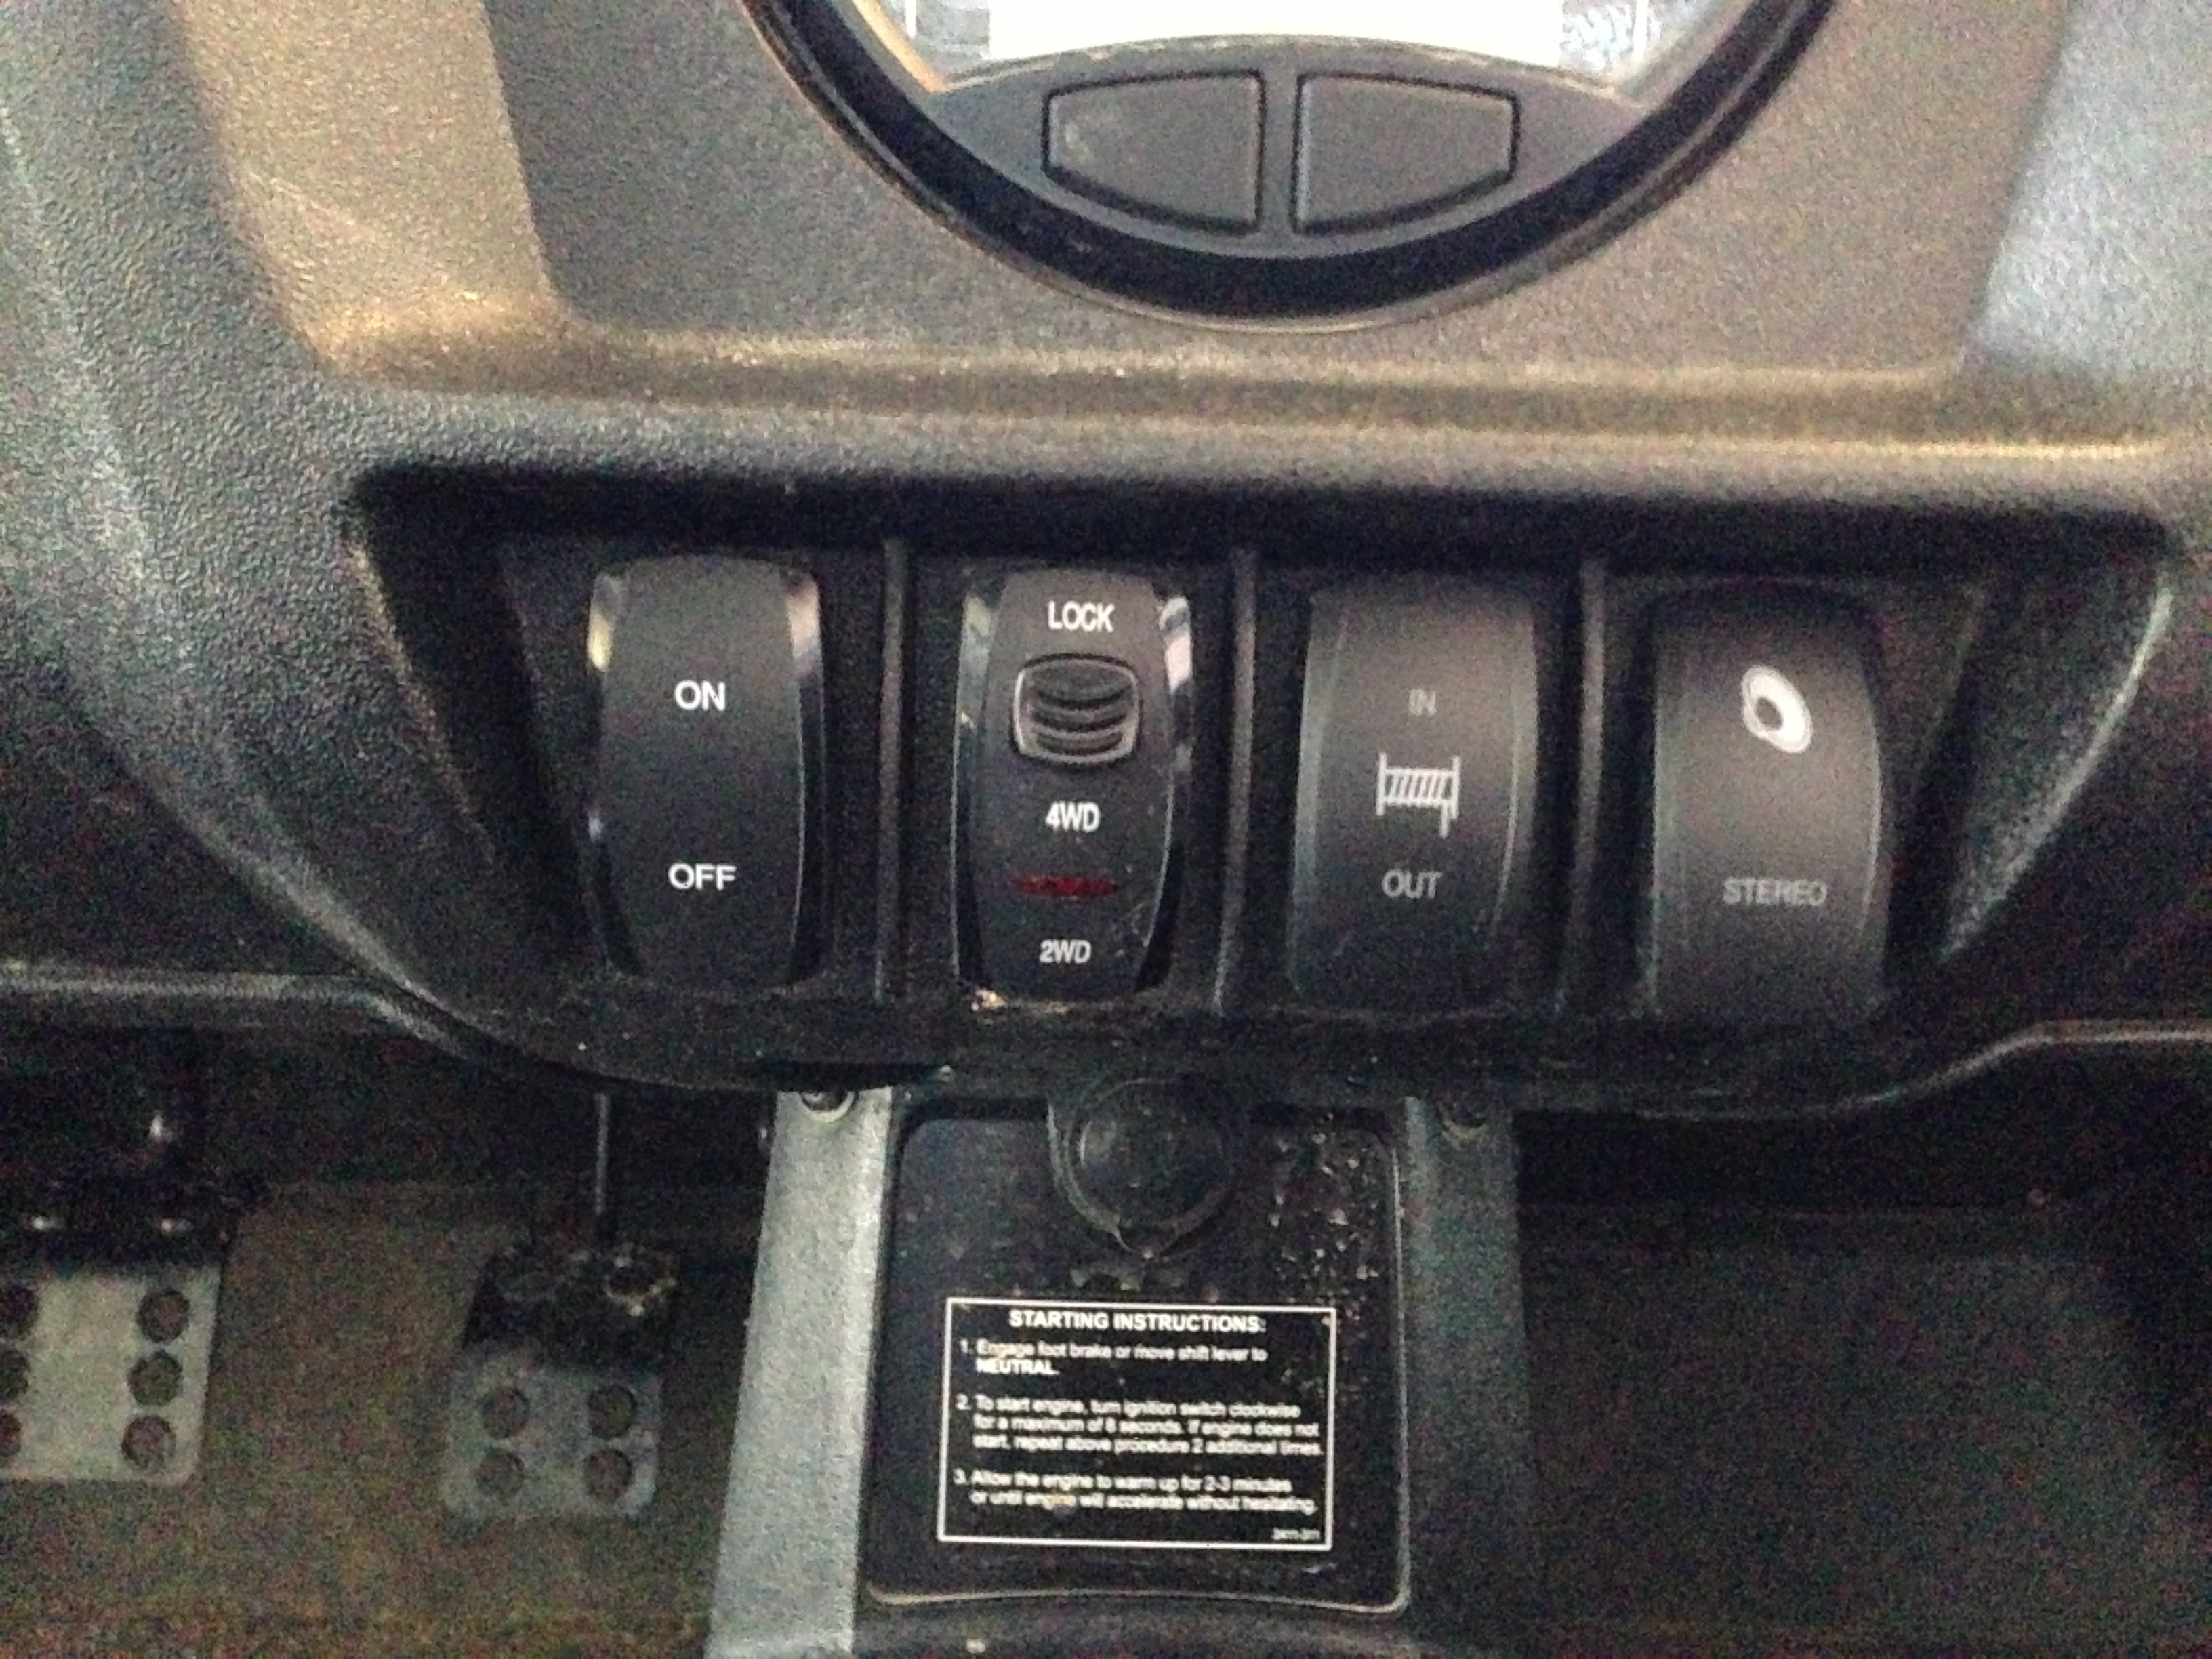 Warn Xt40 Installed With Custom Dash Switch Wiring Diagram Name Img 0107 Views 1081 Size 210 Mb